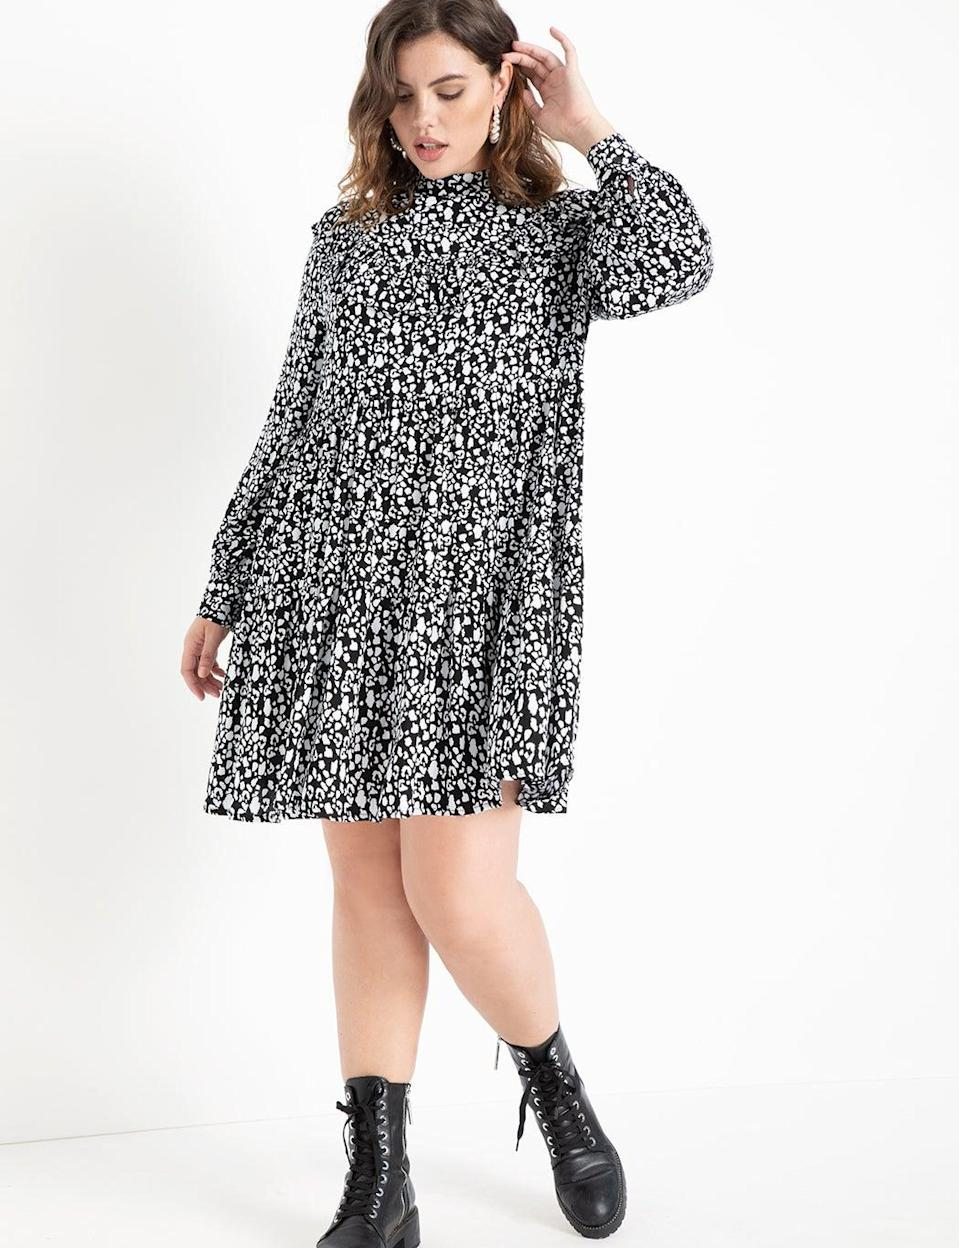 """<br> <br> <strong>Eloquii</strong> Easy Dress with Tiered Skirt, $, available at <a href=""""https://go.skimresources.com/?id=30283X879131&url=https%3A%2F%2Fwww.eloquii.com%2Feasy-dress-with-tiered-skirt%2F1248946.html%3Fdwvar_1248946_colorCode%3D6"""" rel=""""nofollow noopener"""" target=""""_blank"""" data-ylk=""""slk:Eloquii"""" class=""""link rapid-noclick-resp"""">Eloquii</a>"""